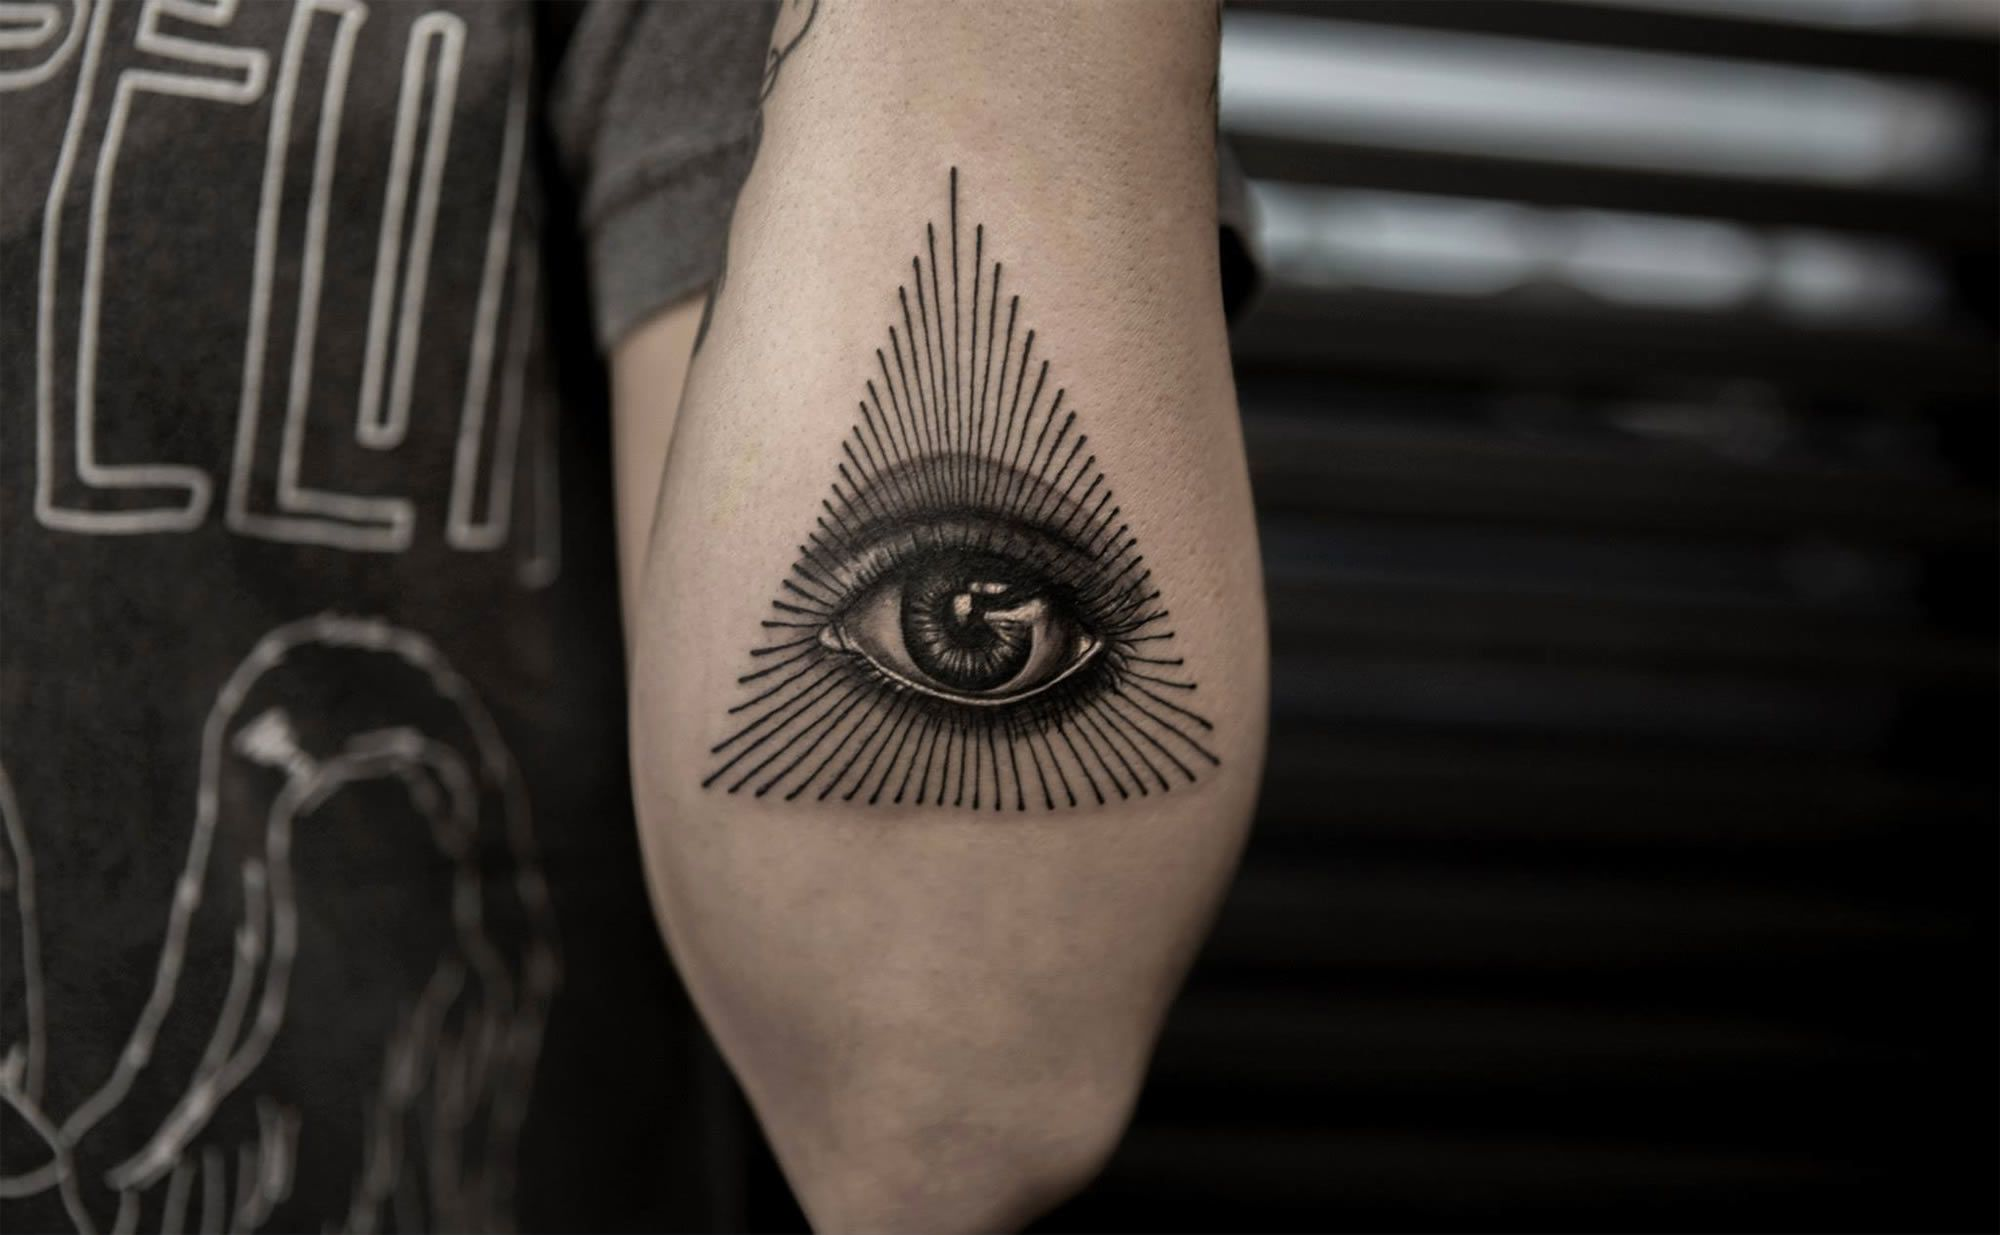 60 Eye Of Providence Tattoo Designs For Men – Manly Ink Ideas